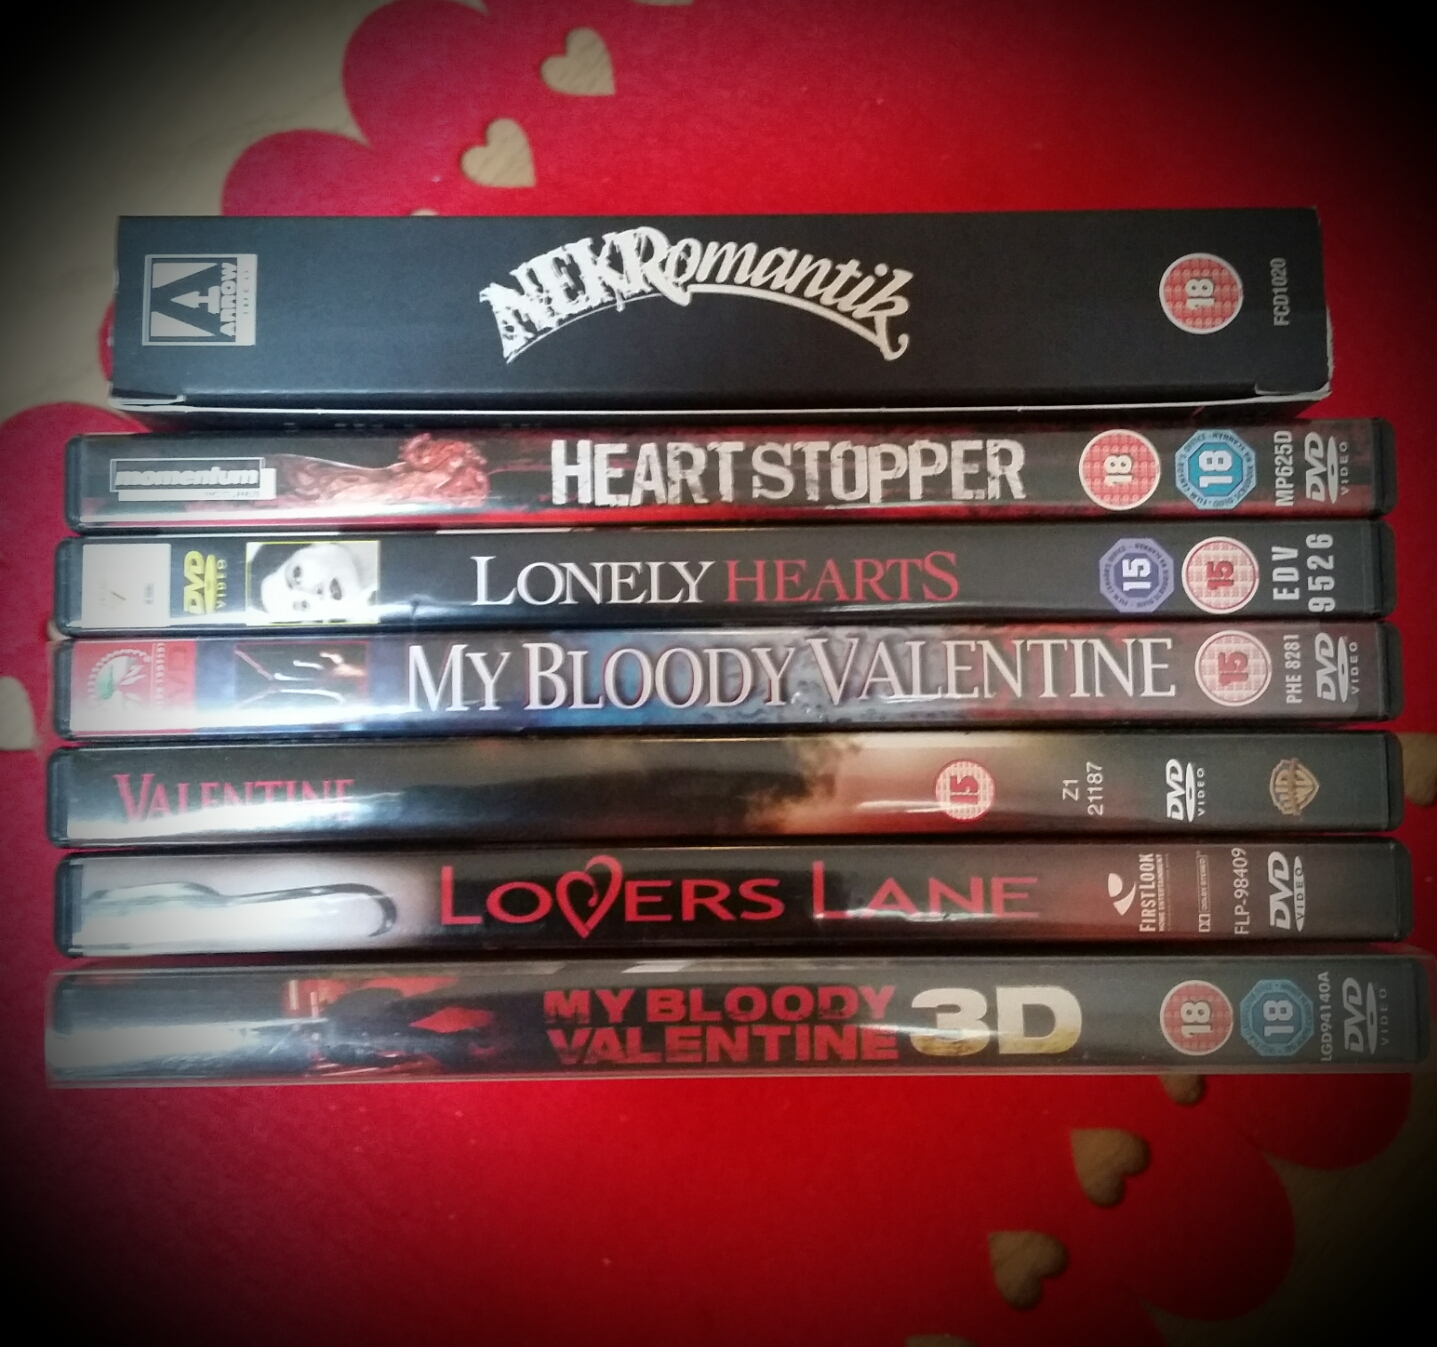 NEKRomantik U2013 Arrow Films, Heartstopper (2006), Lonely Hearts (2006), My  Bloody Valentine (1981), Valentine (2001), Loveru0027s Lane (2000), My Bloody  Valentine ...